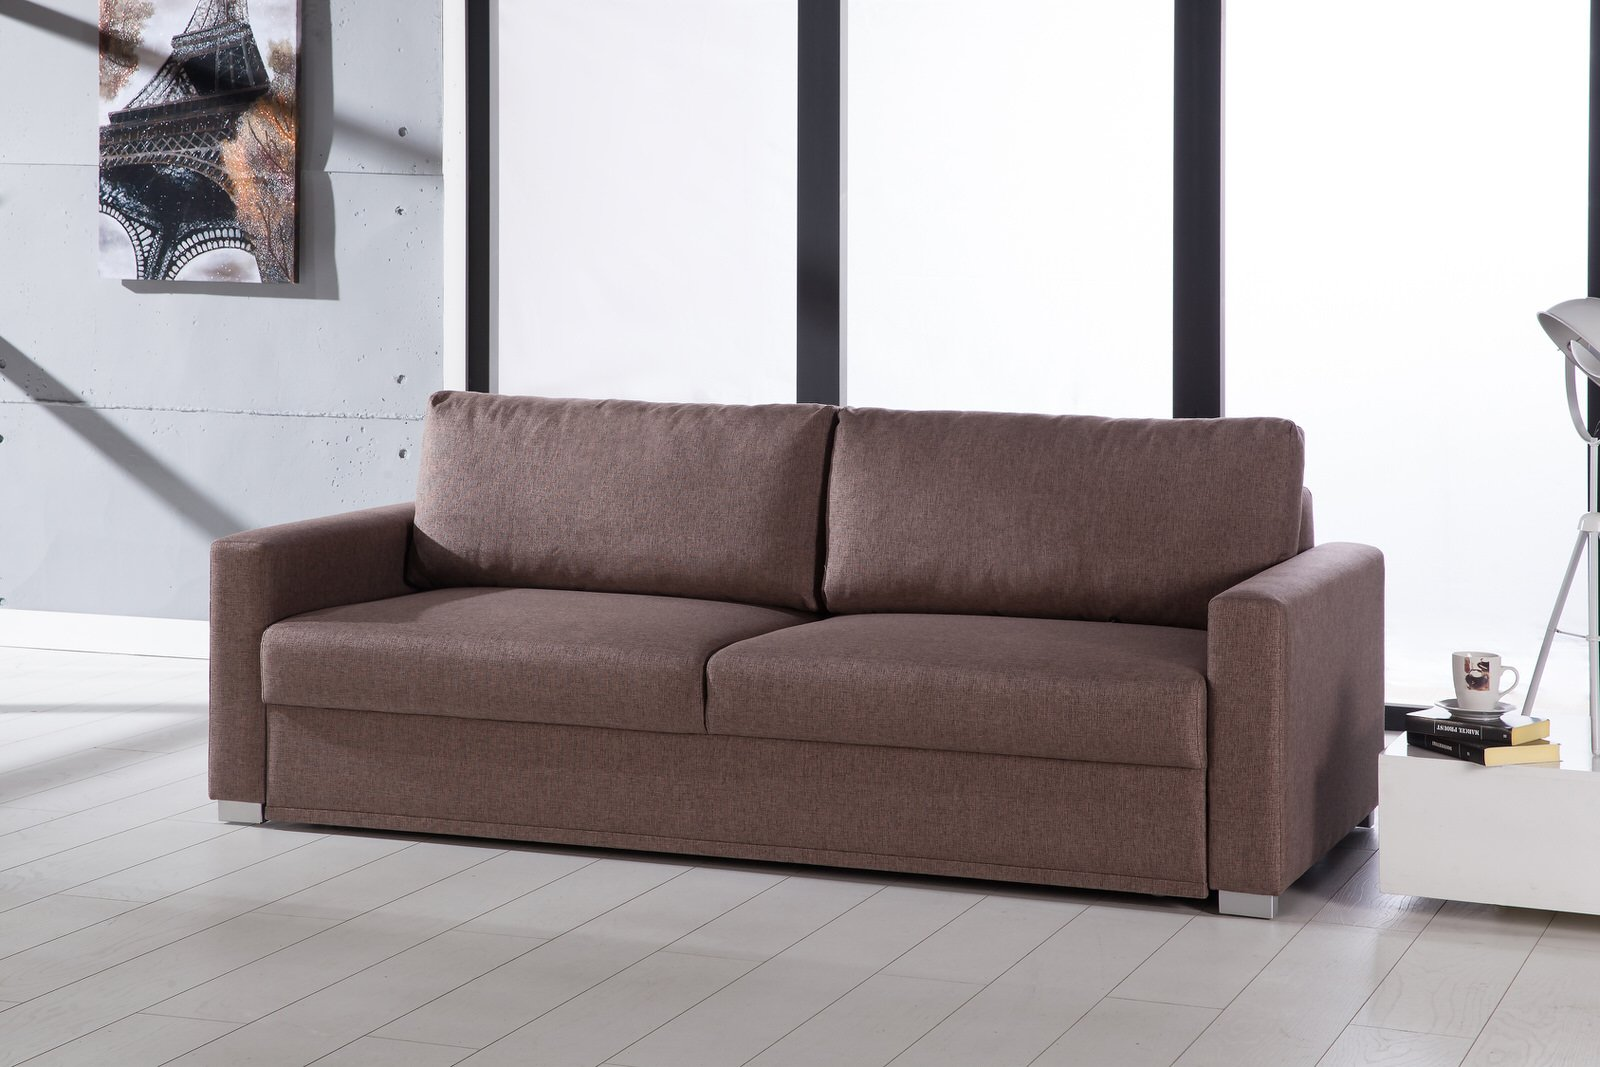 Felix Diego Light Brown Convertible Sofa Bed by Sunset